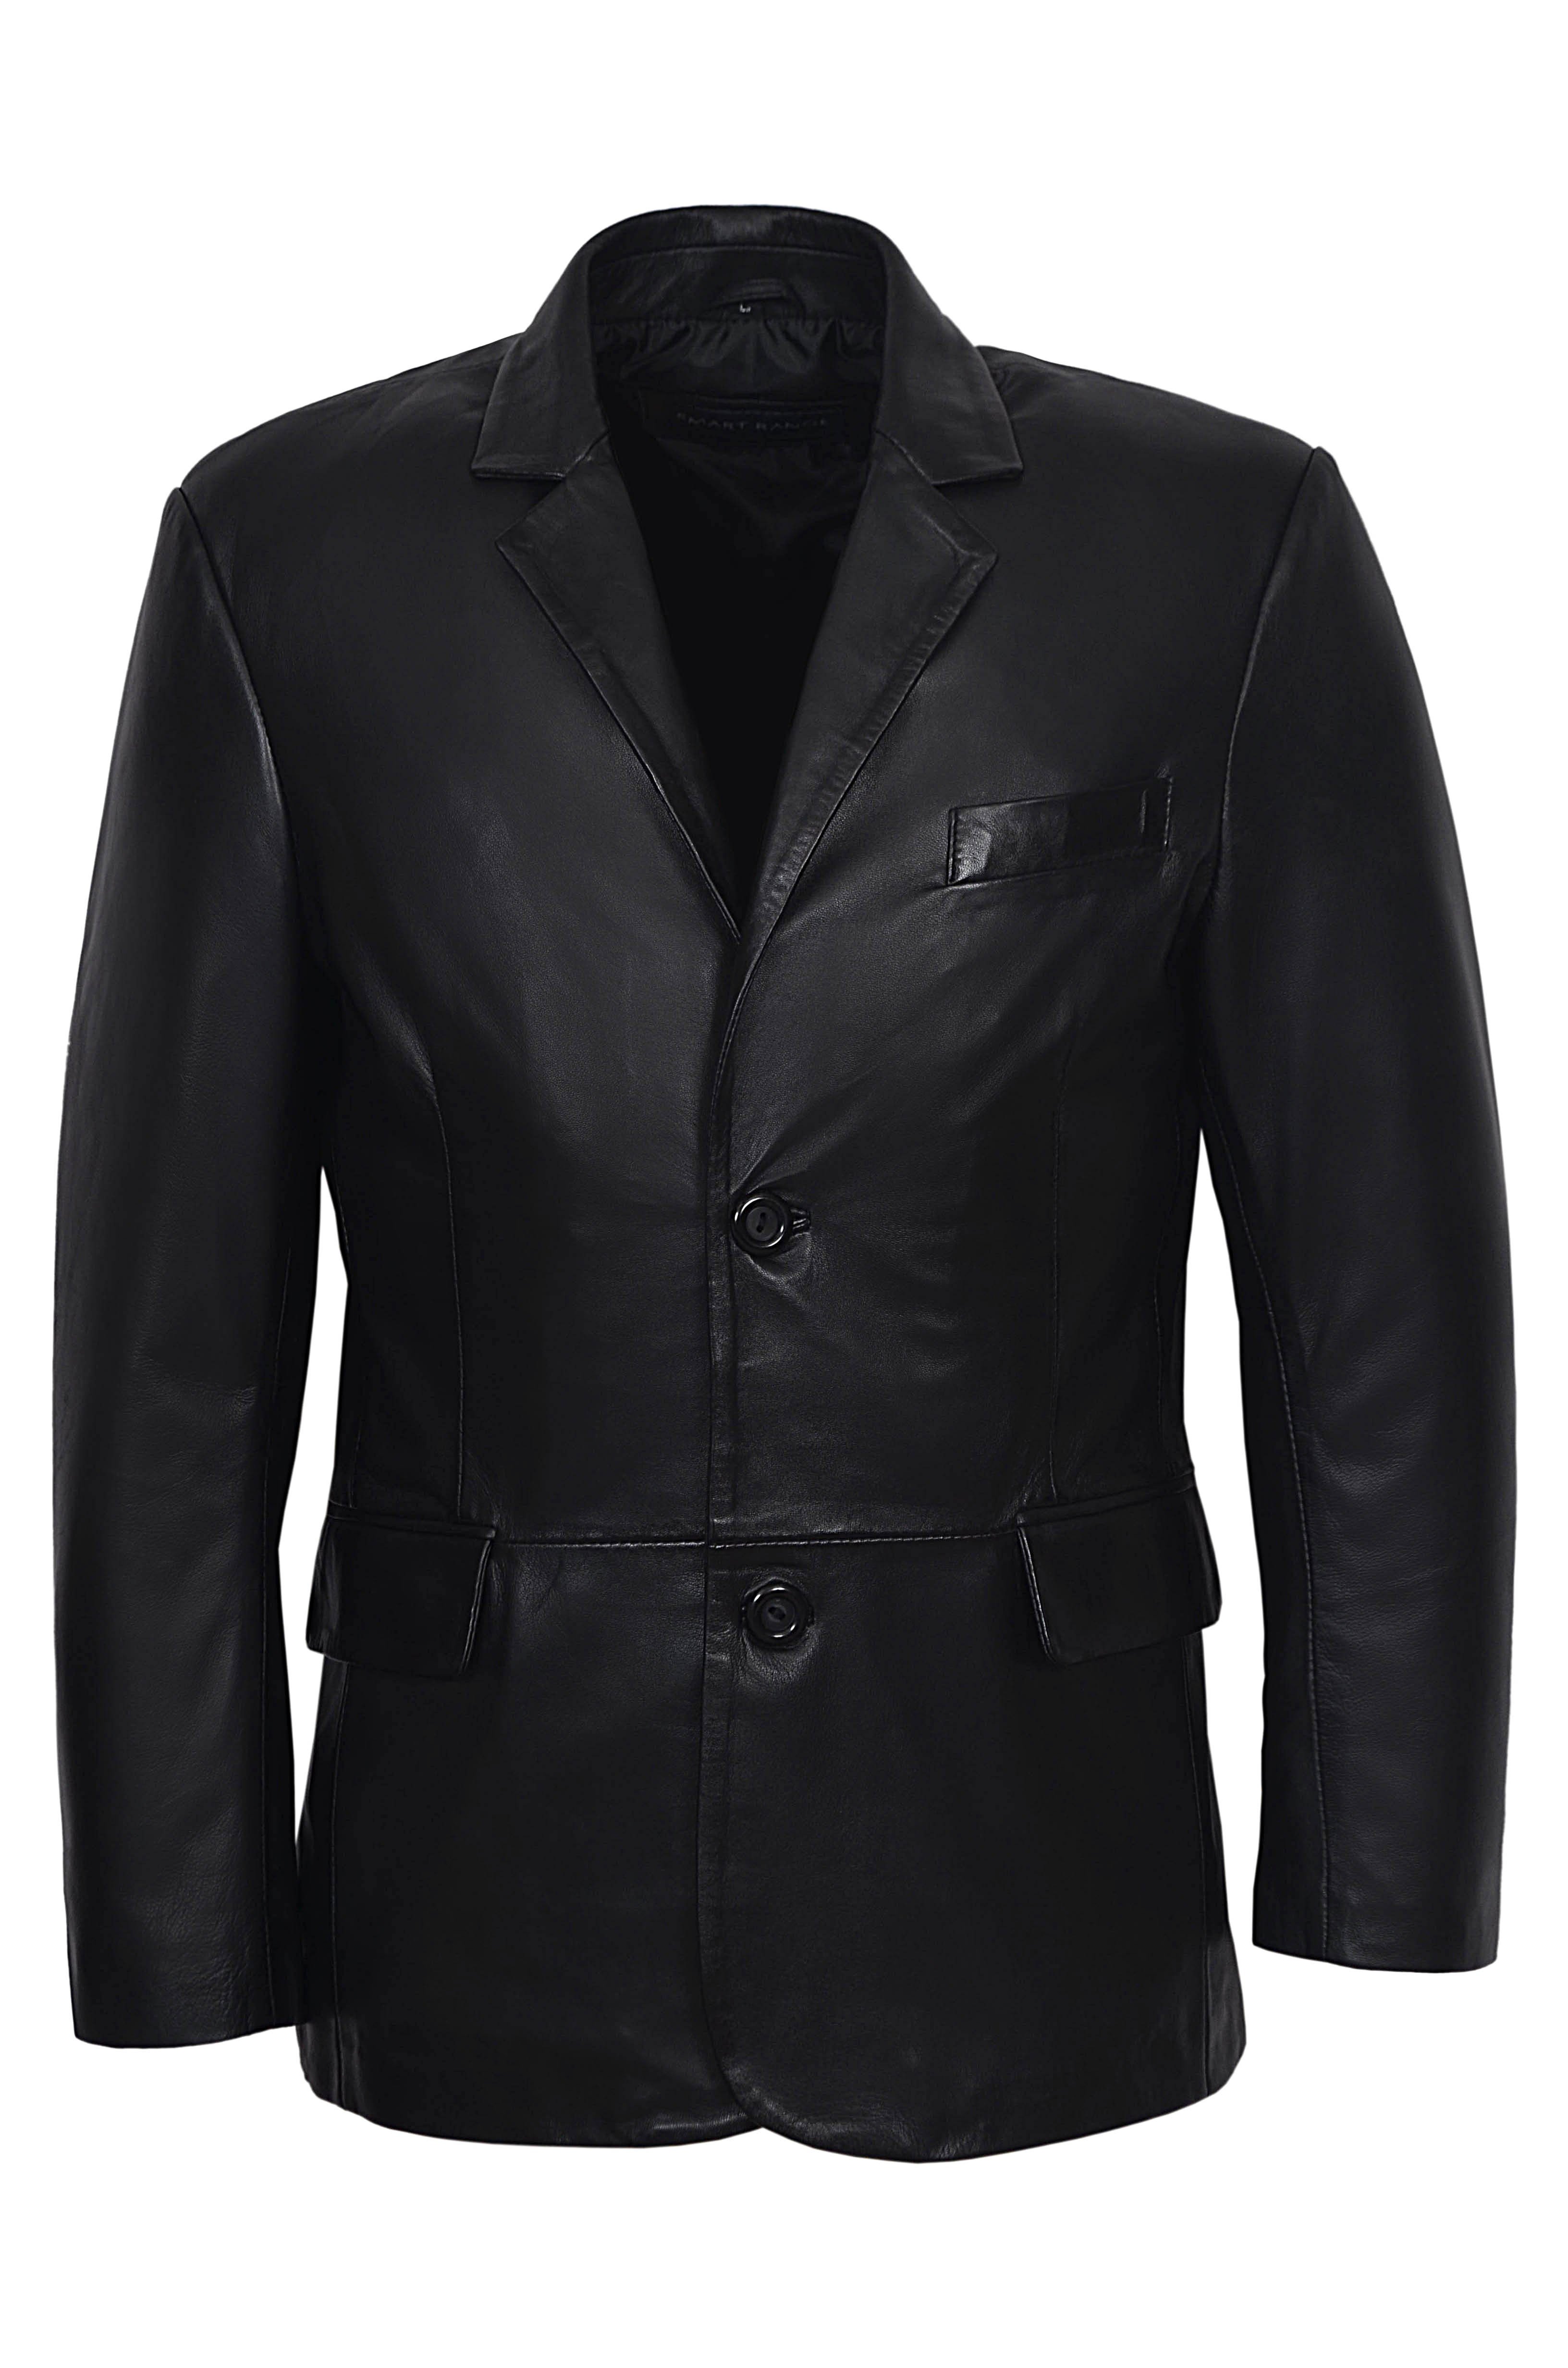 REAL BLACK CLASSIC BLAZER MEN'S TAILORED SOFT 4080 REAL NAPPA LEATHER JACKET COAT